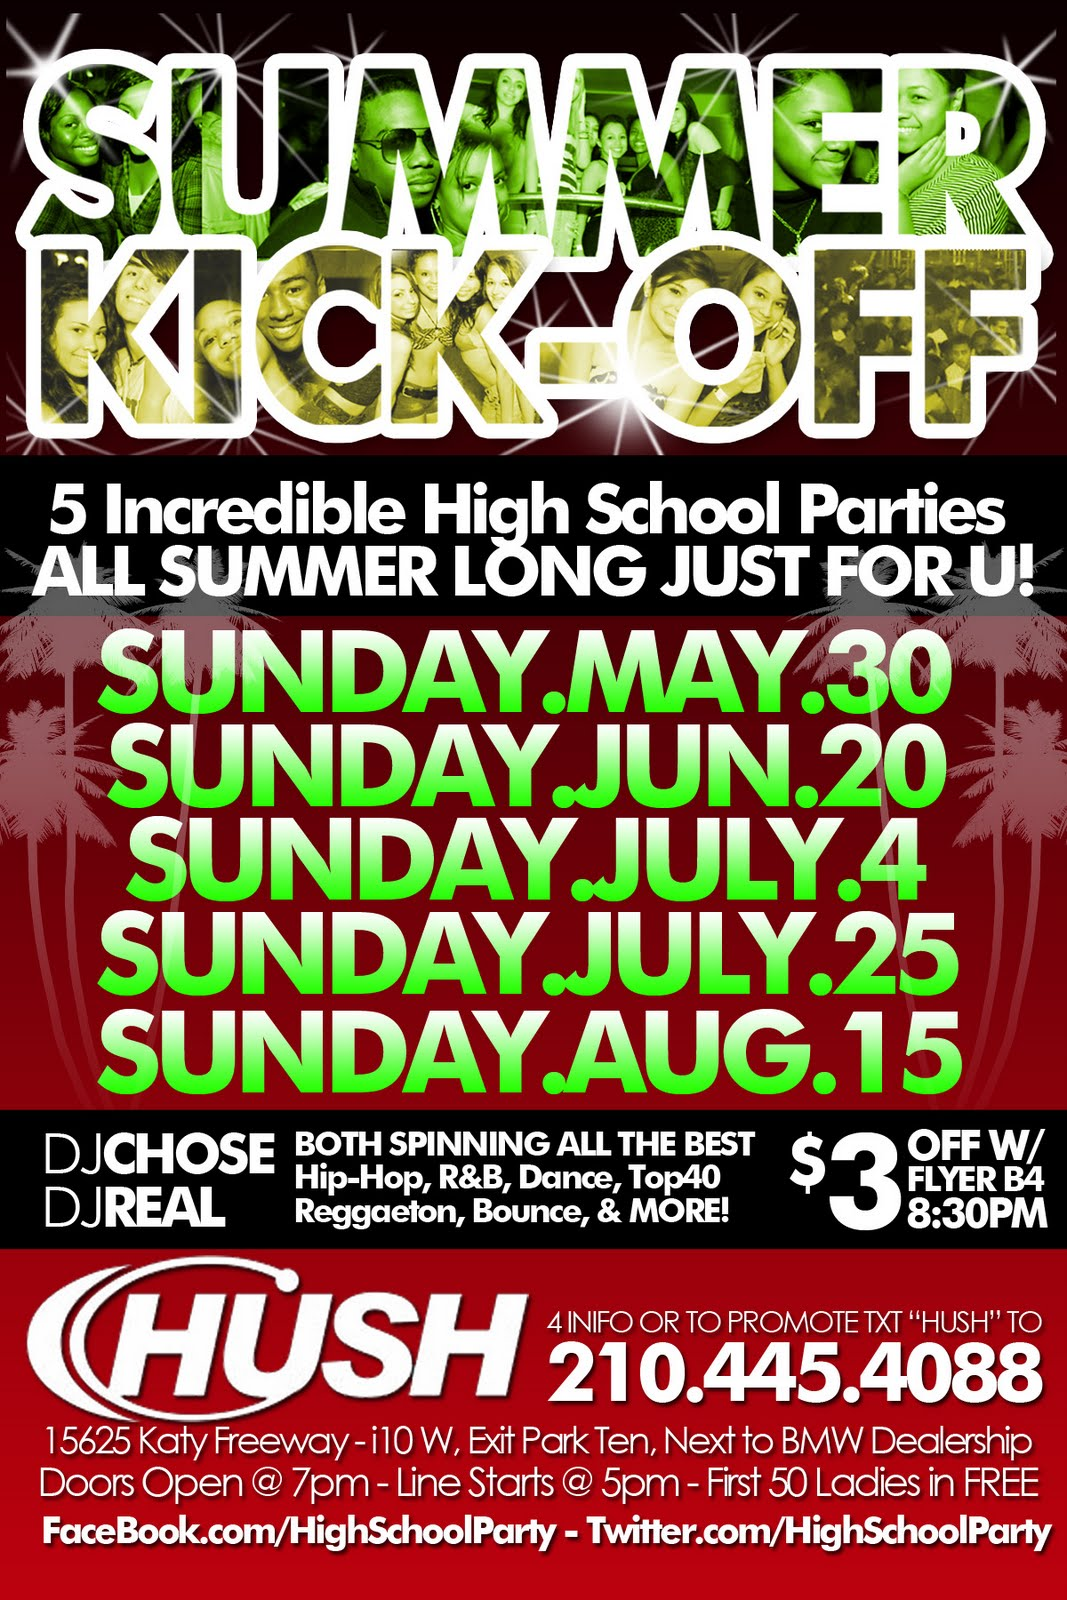 Hush Pride Party 2011